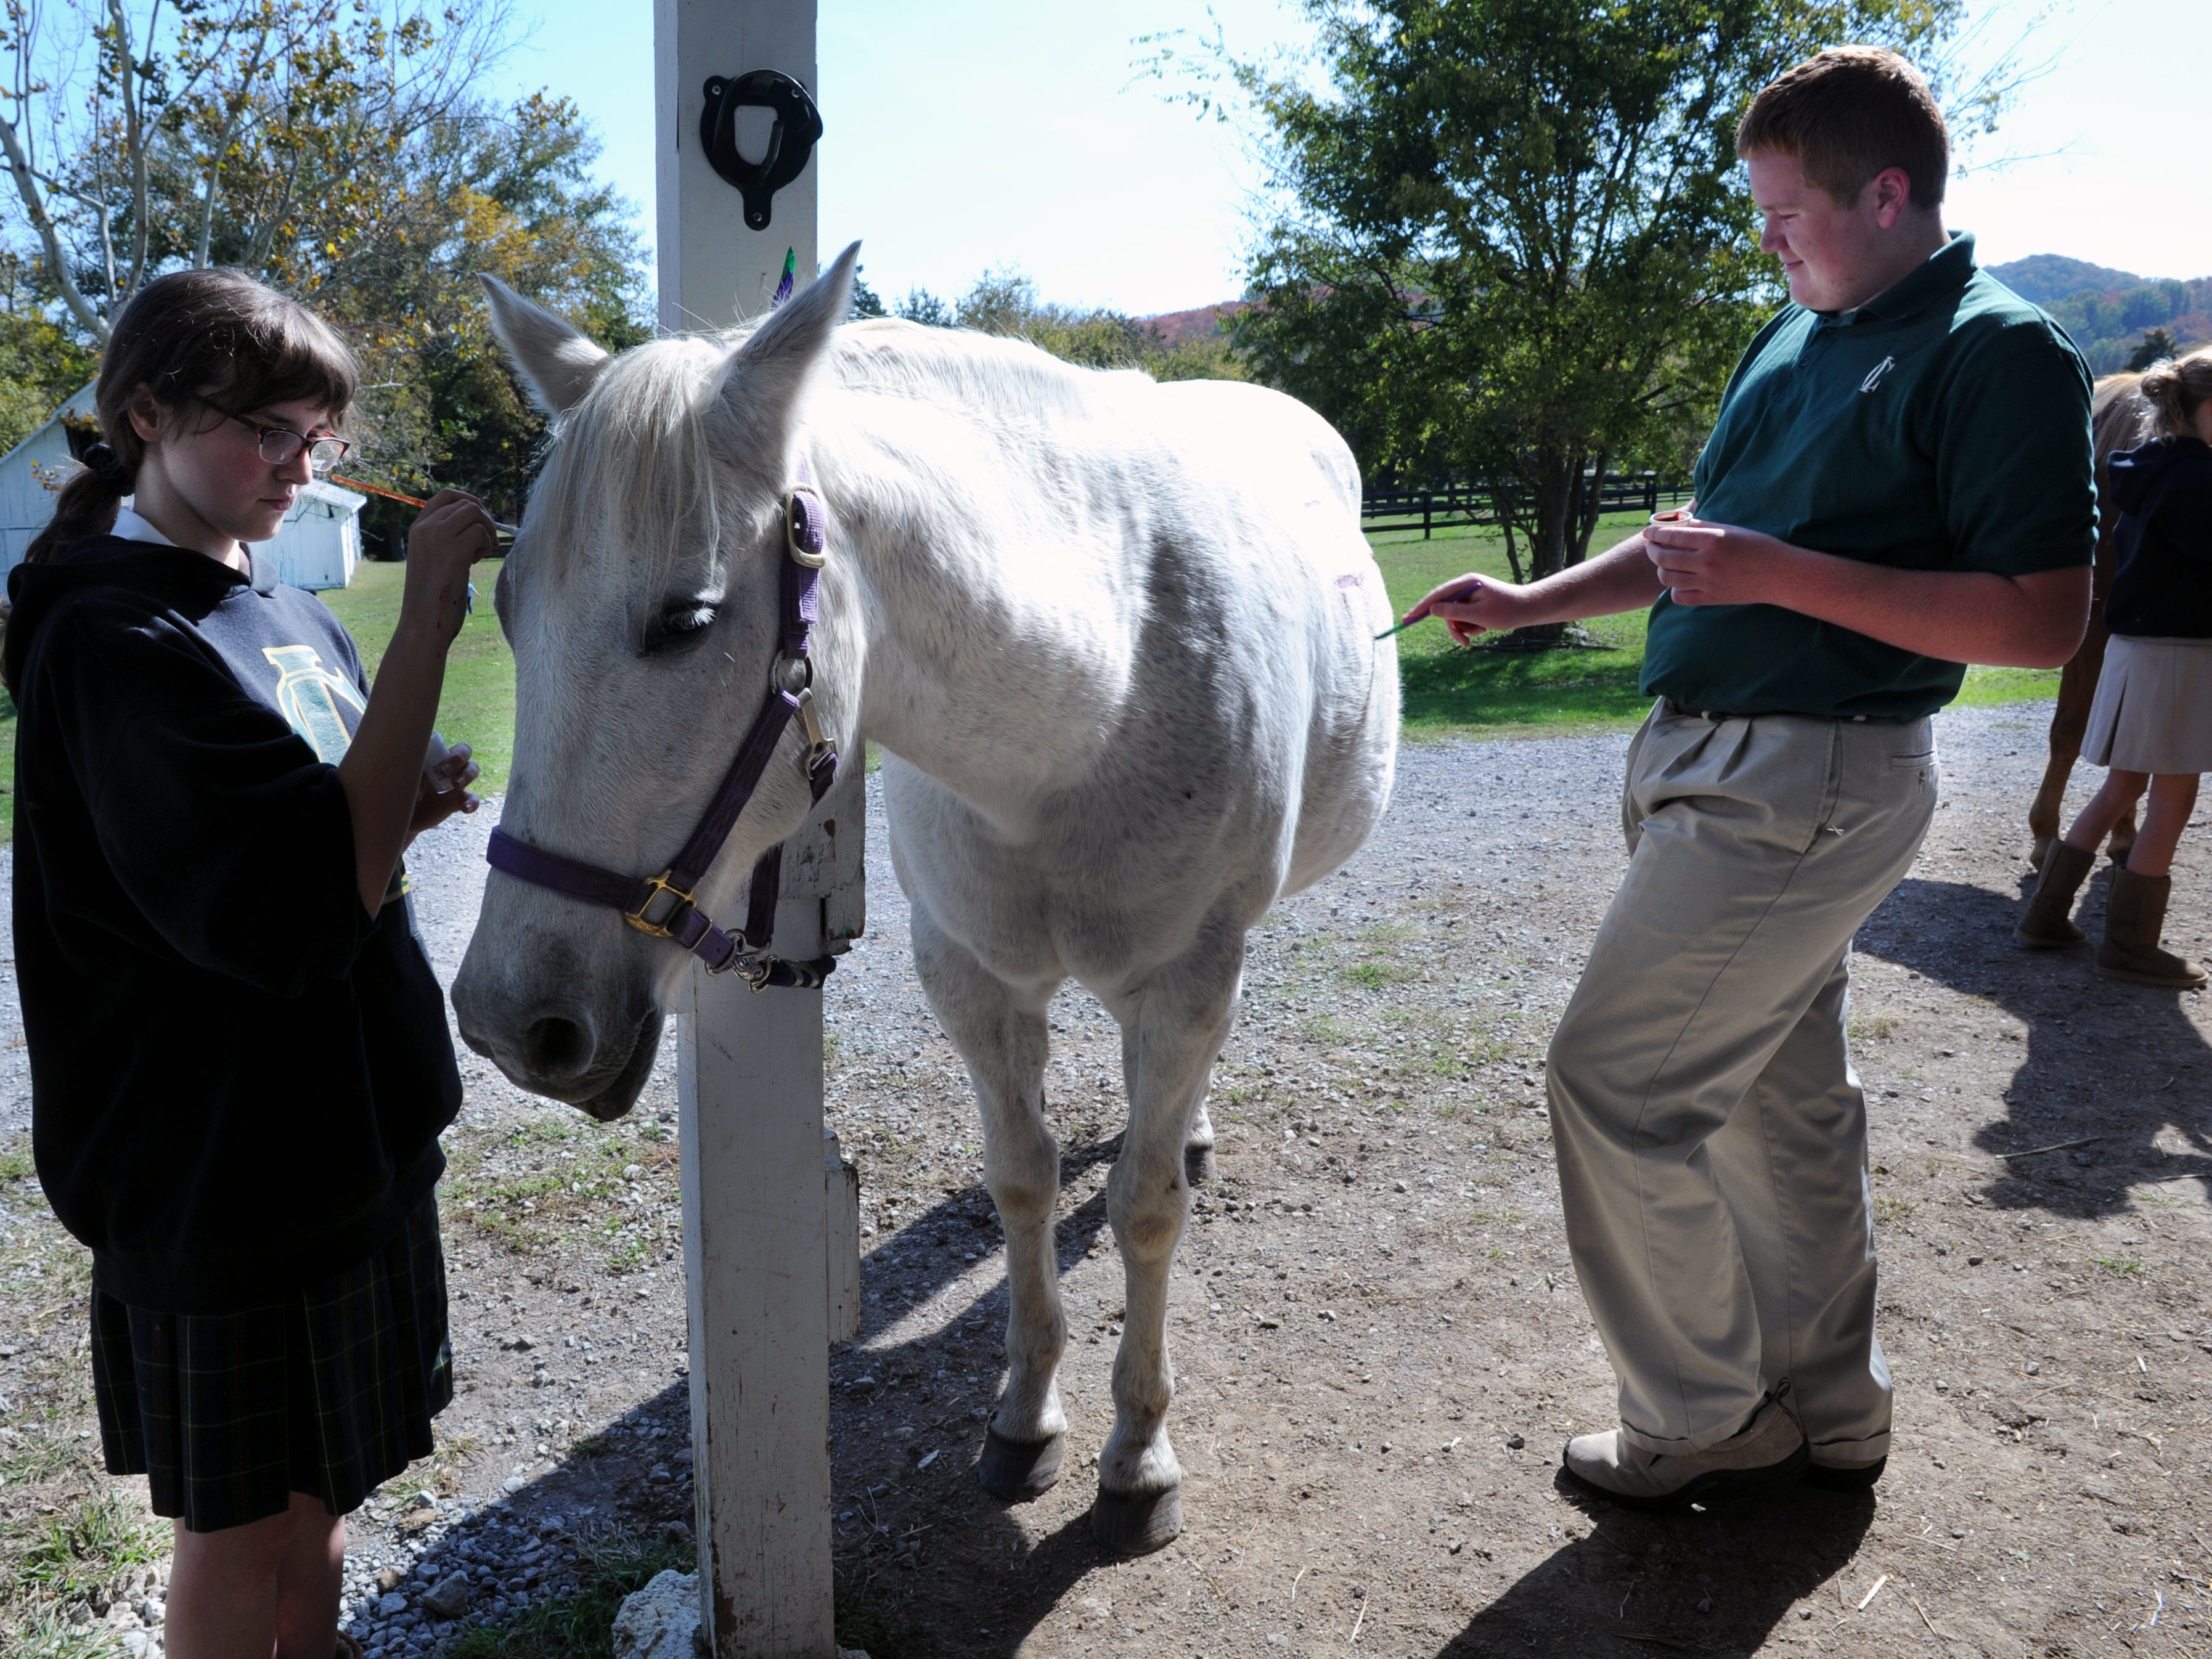 In 2012, Currey Ingram Academy students Issy Hall and Matt Miller paint Native American symbols on Nelly, a horse that is part of the school's equine therapy program.